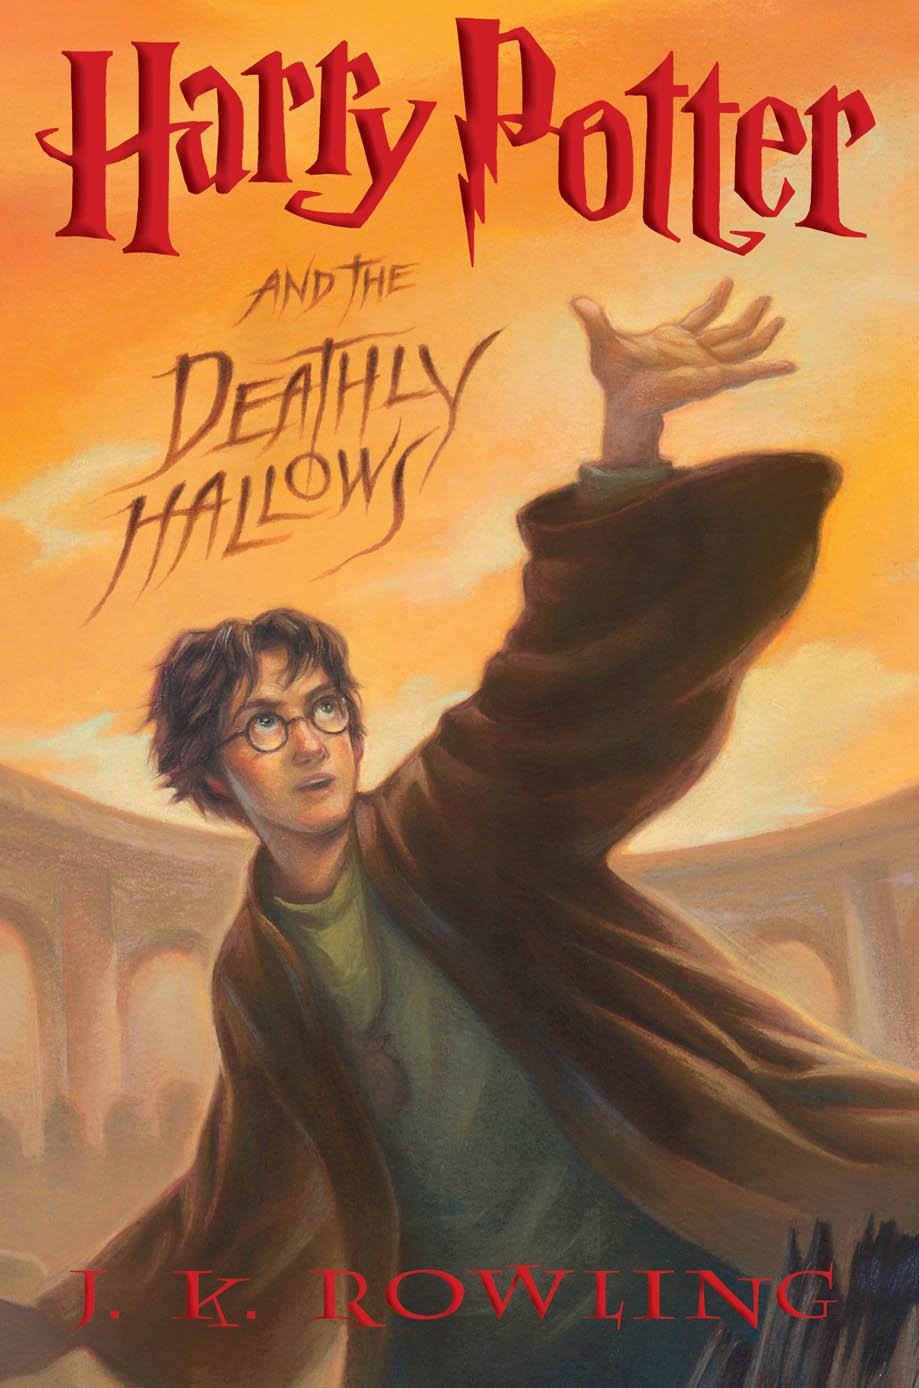 Free download harry potter deathly hallows movie.